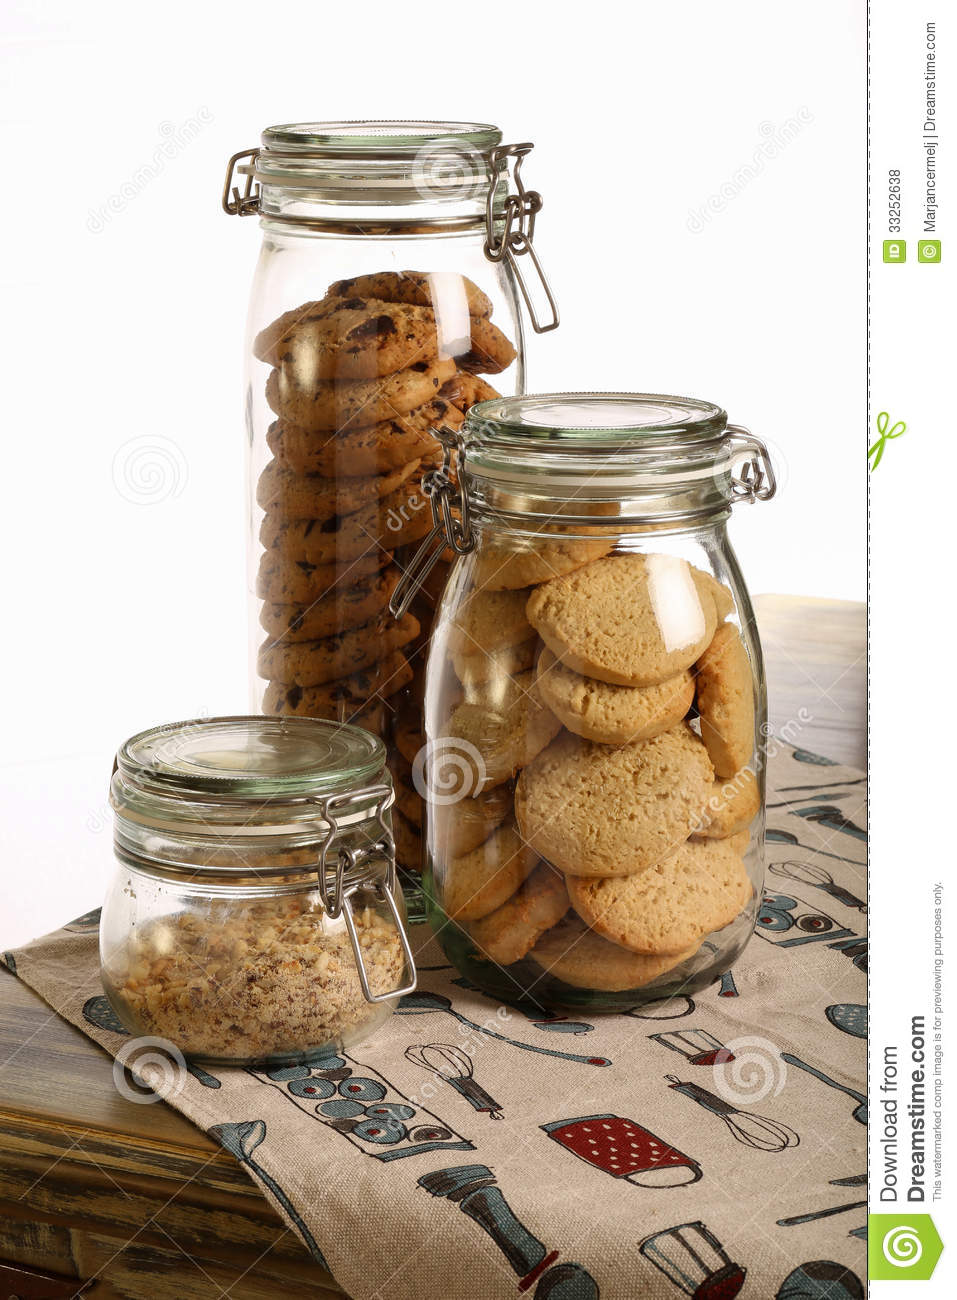 Chocolate And Lavender Cookies And Crushed Hazelnuts In A